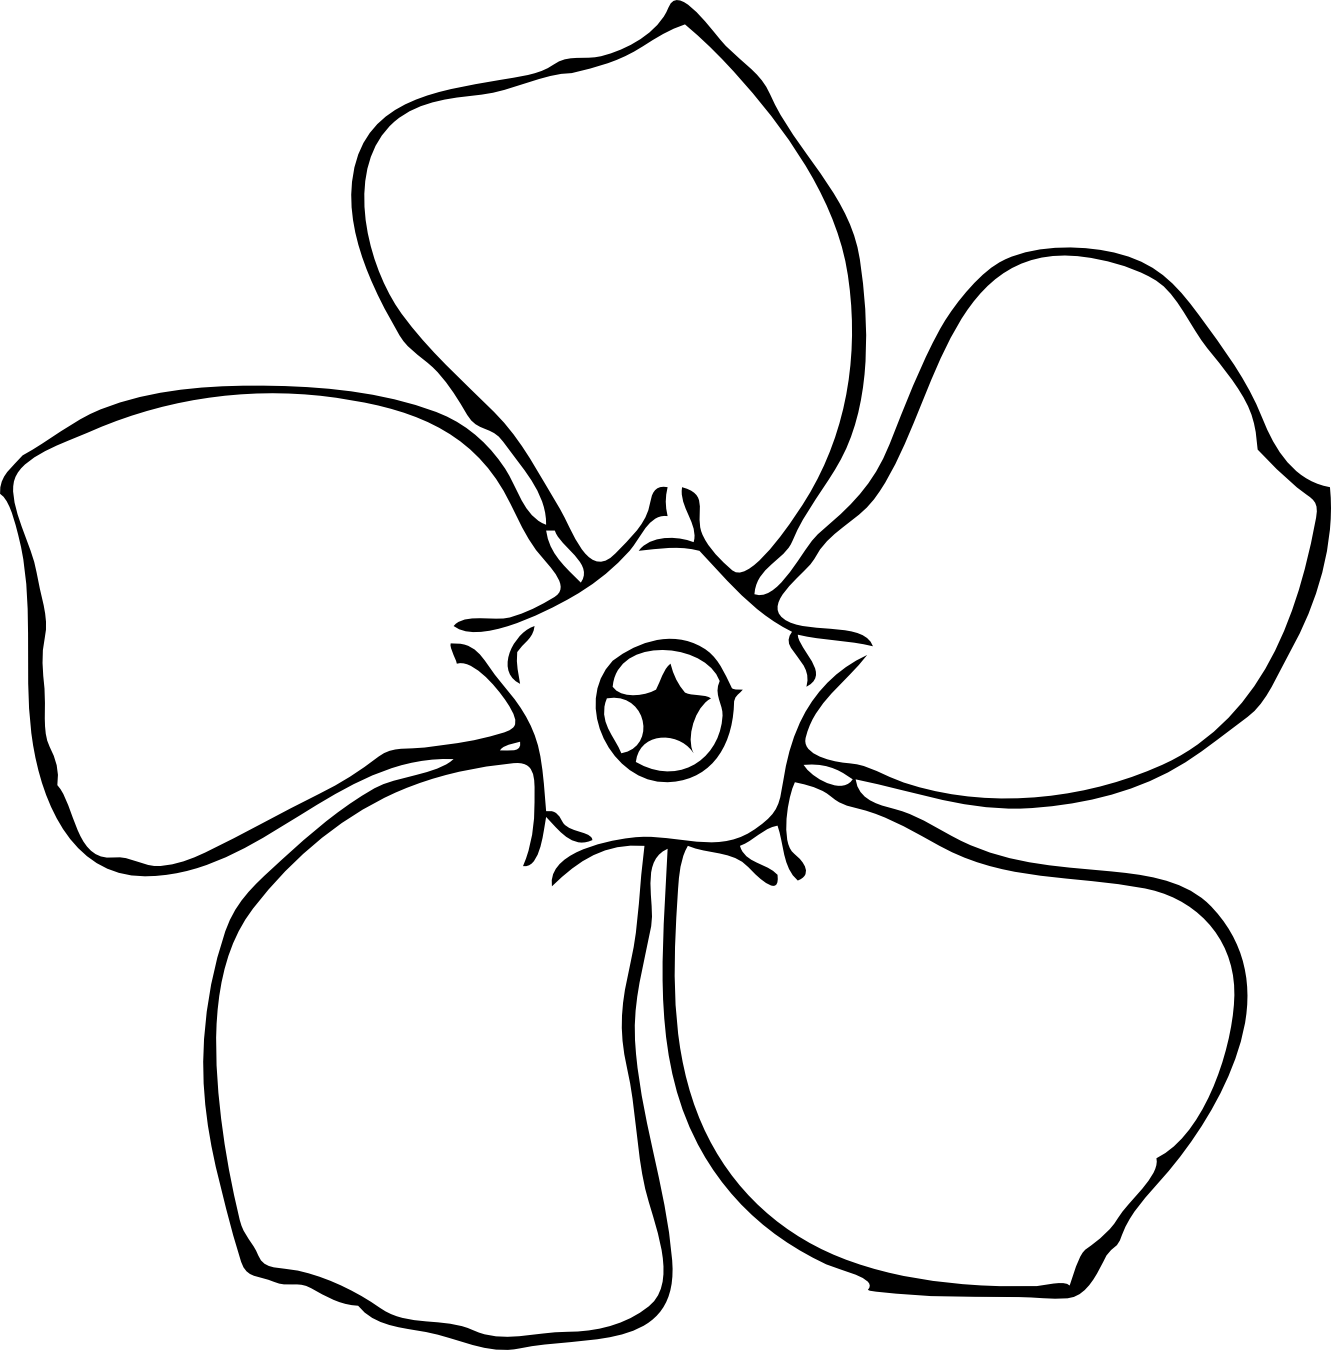 coloring flower clipart black and white gambar black and white clipart oleh enosartcom gambar clipart flower black and white coloring